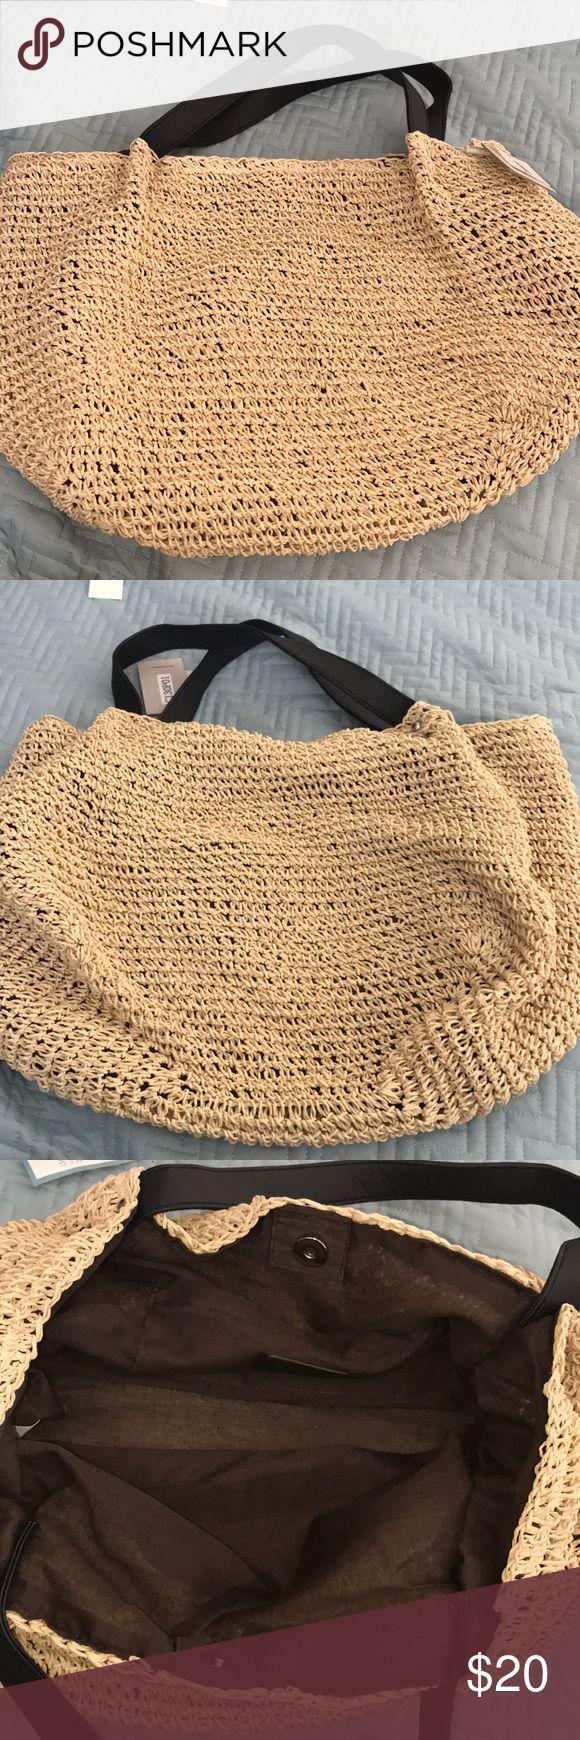 Brown and Black Crochet Shoulder Bag •Lavand. •Brown and Black Crochet Shoulder Bag •100% Paper Straw  •New •Never been used •Great for the beach Lavand Bags Shoulder Bags